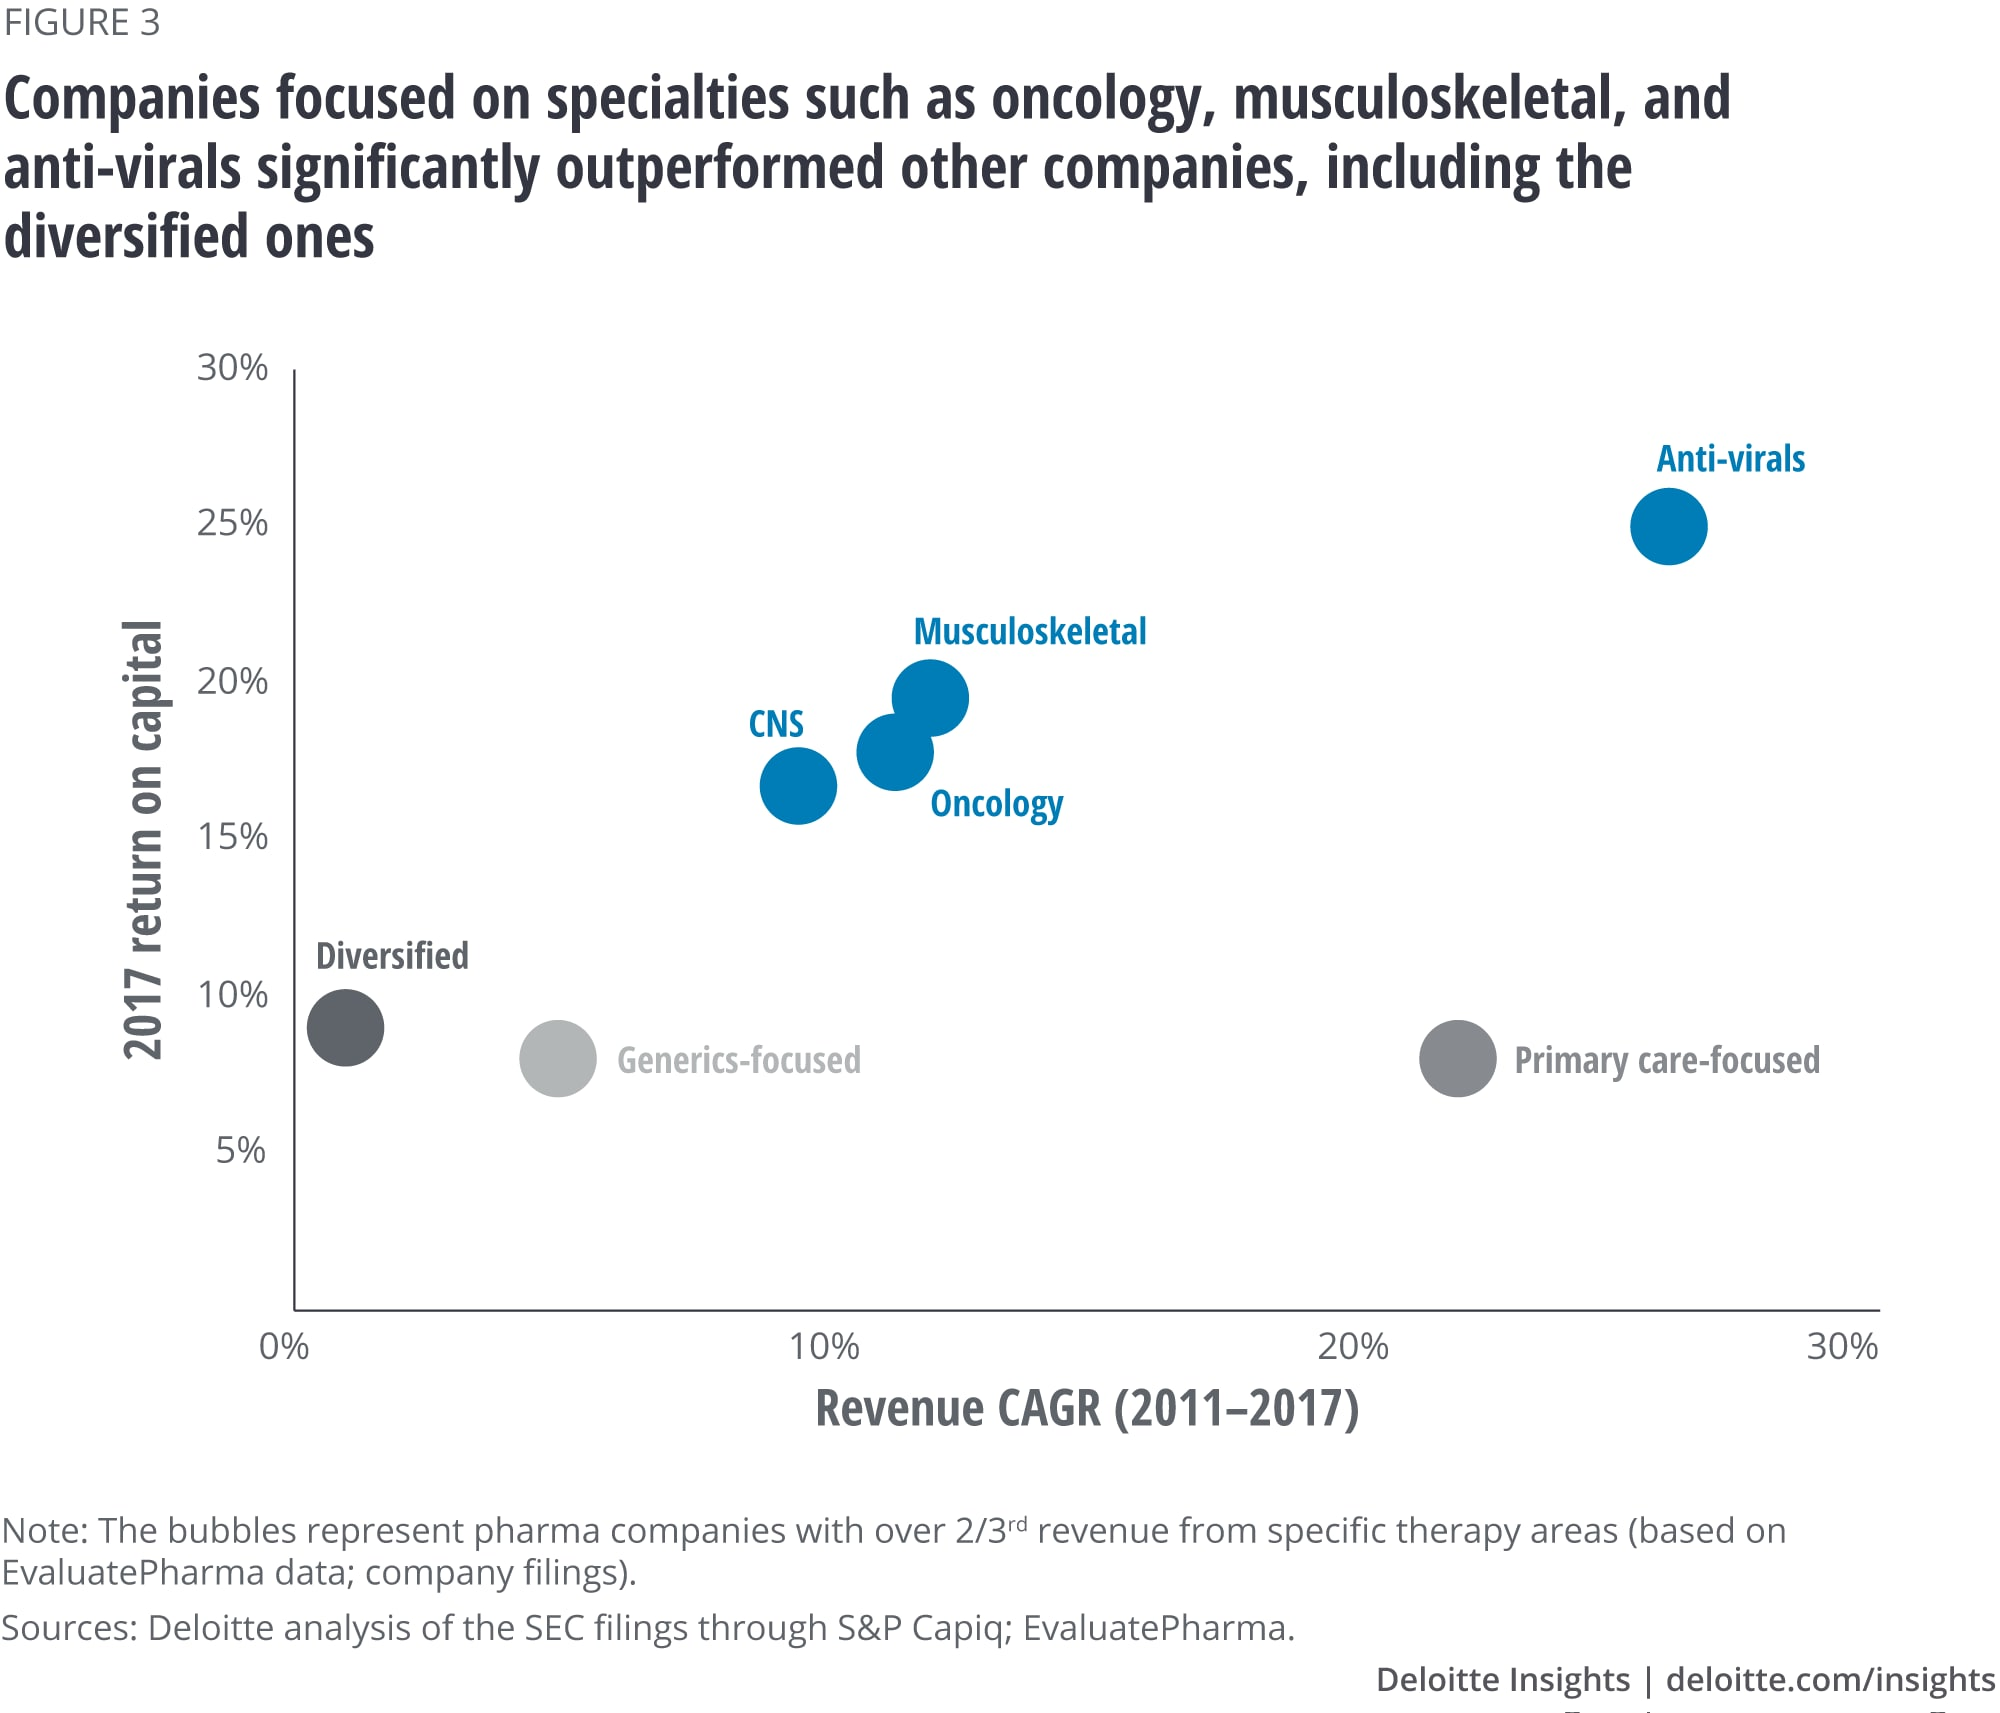 Companies focused on specialties such as oncology, musculoskeletal, and anti-virals significantly outperformed other companies, including the diversified ones